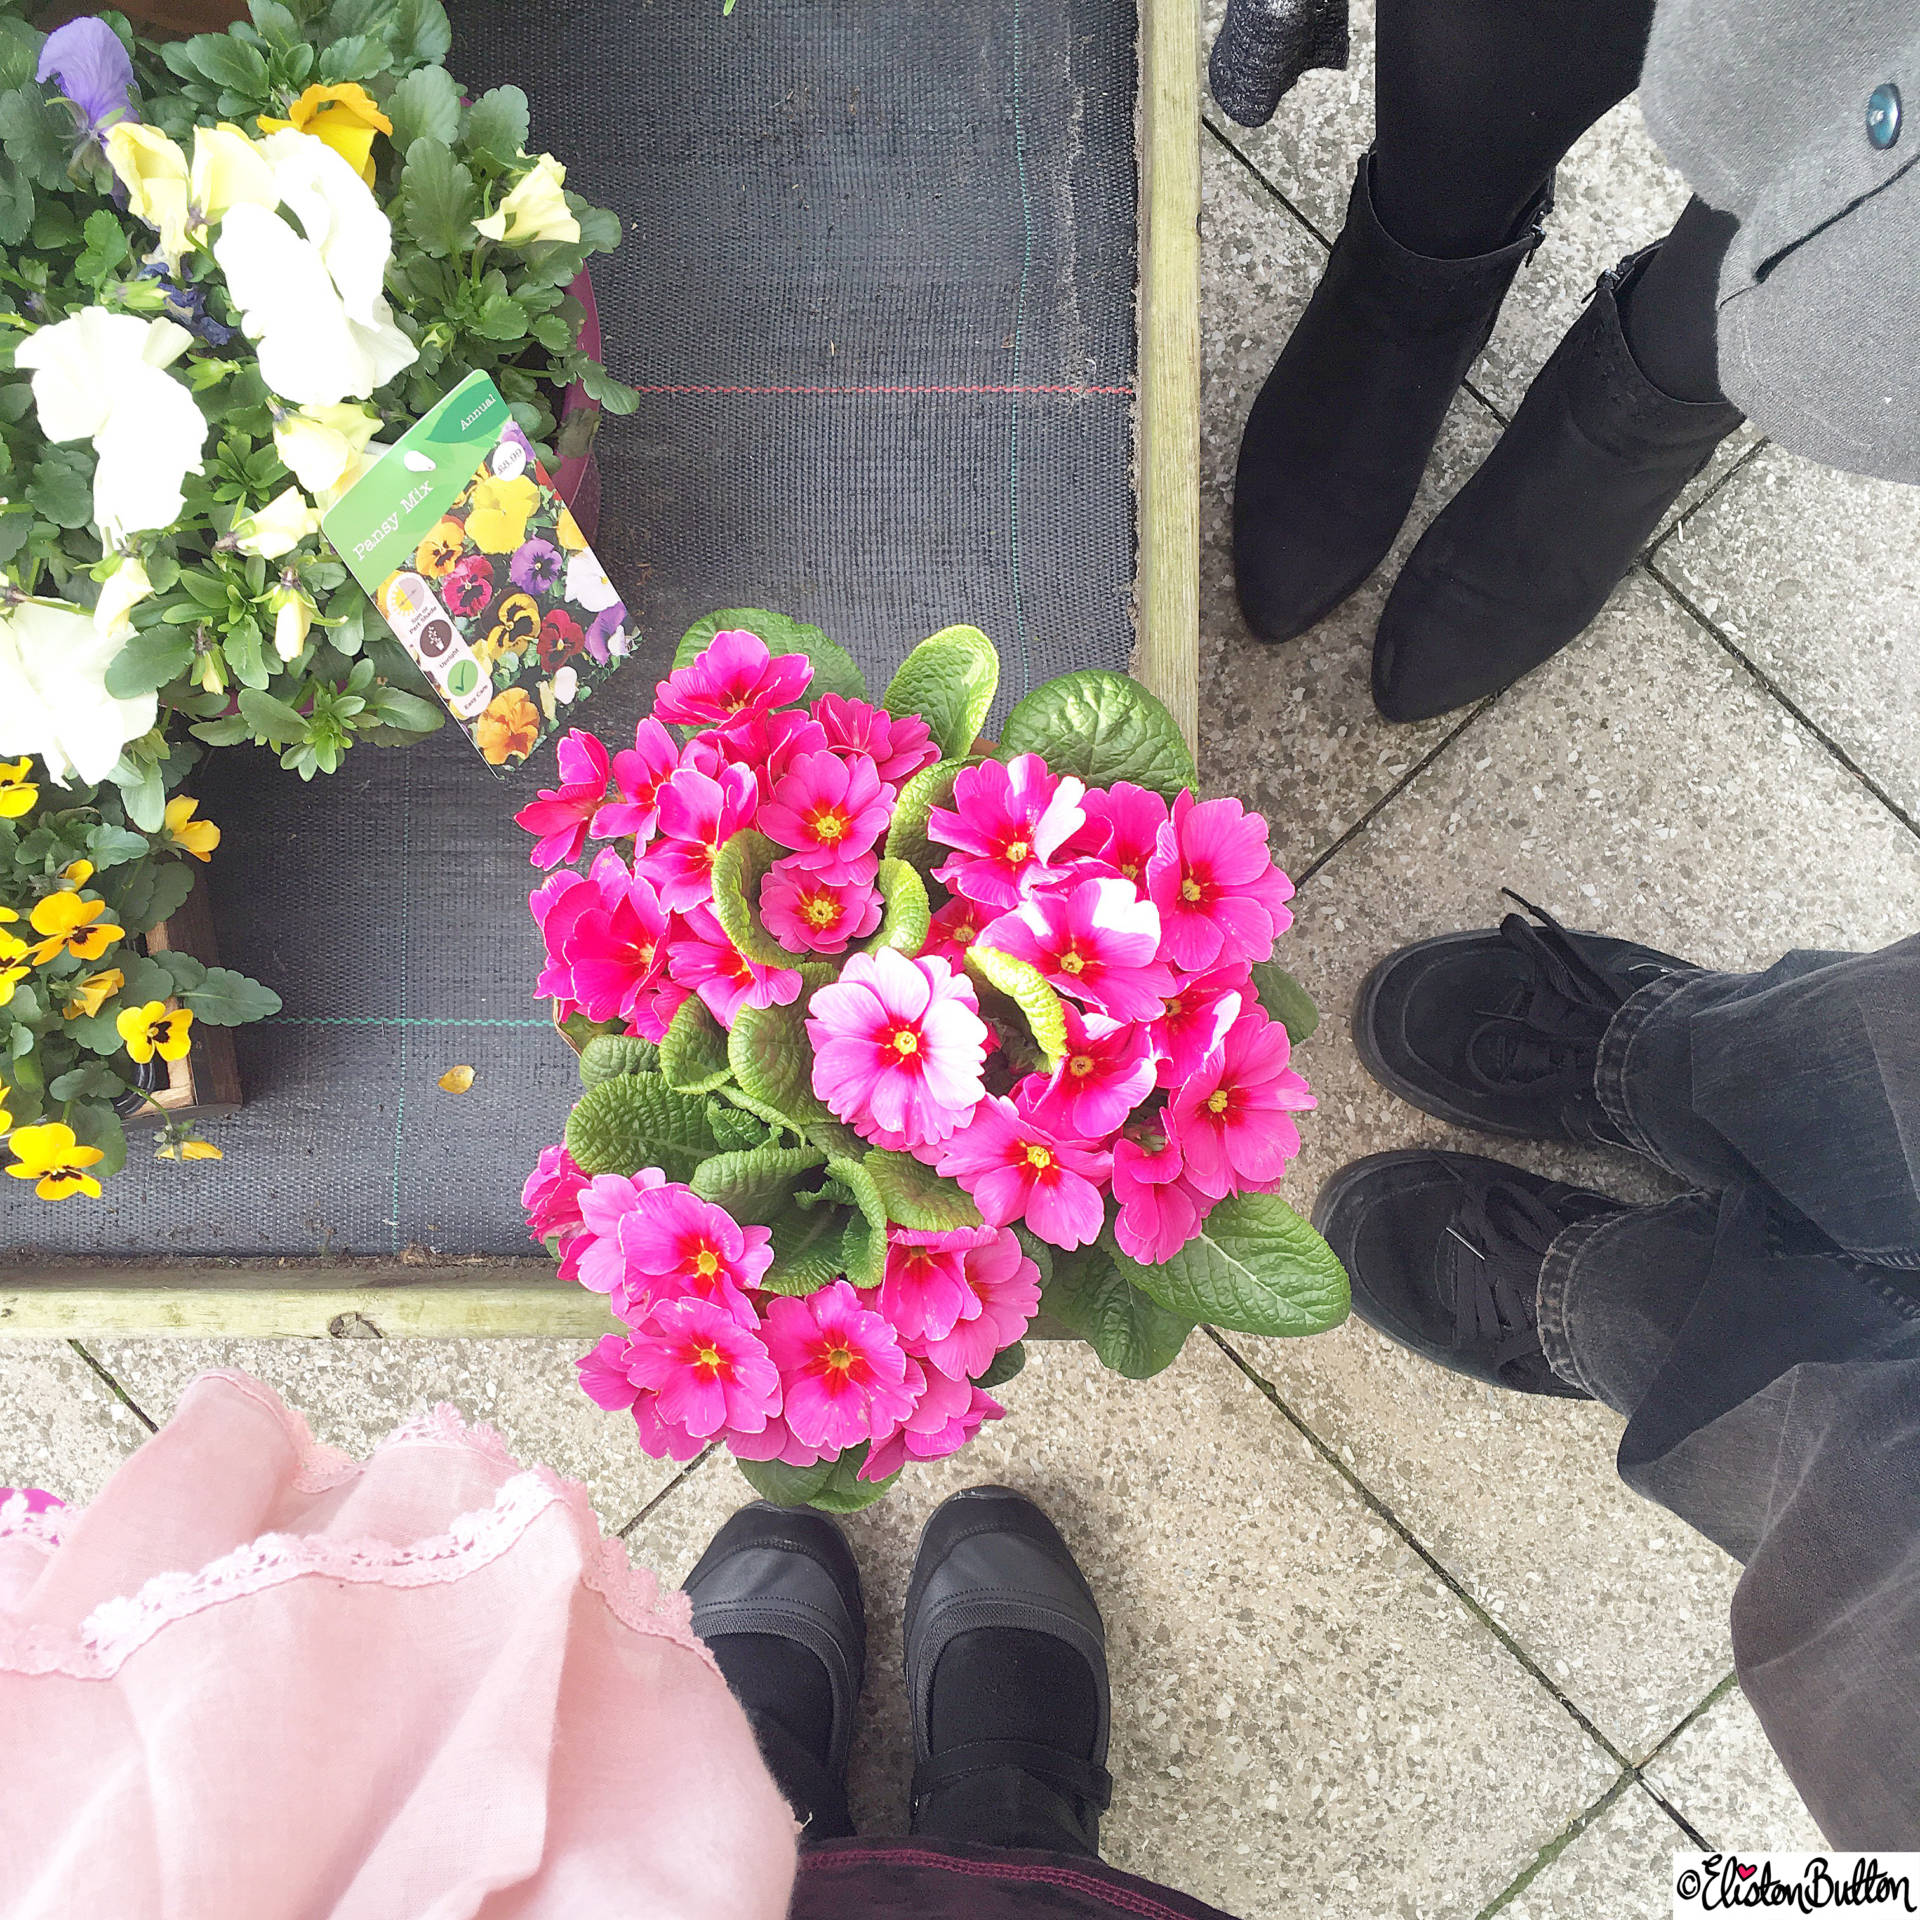 Day 02 - Looking Down - Flowers and Friends - Photo-a-Day – April 2016 at www.elistonbutton.com - Eliston Button - That Crafty Kid – Art, Design, Craft & Adventure.